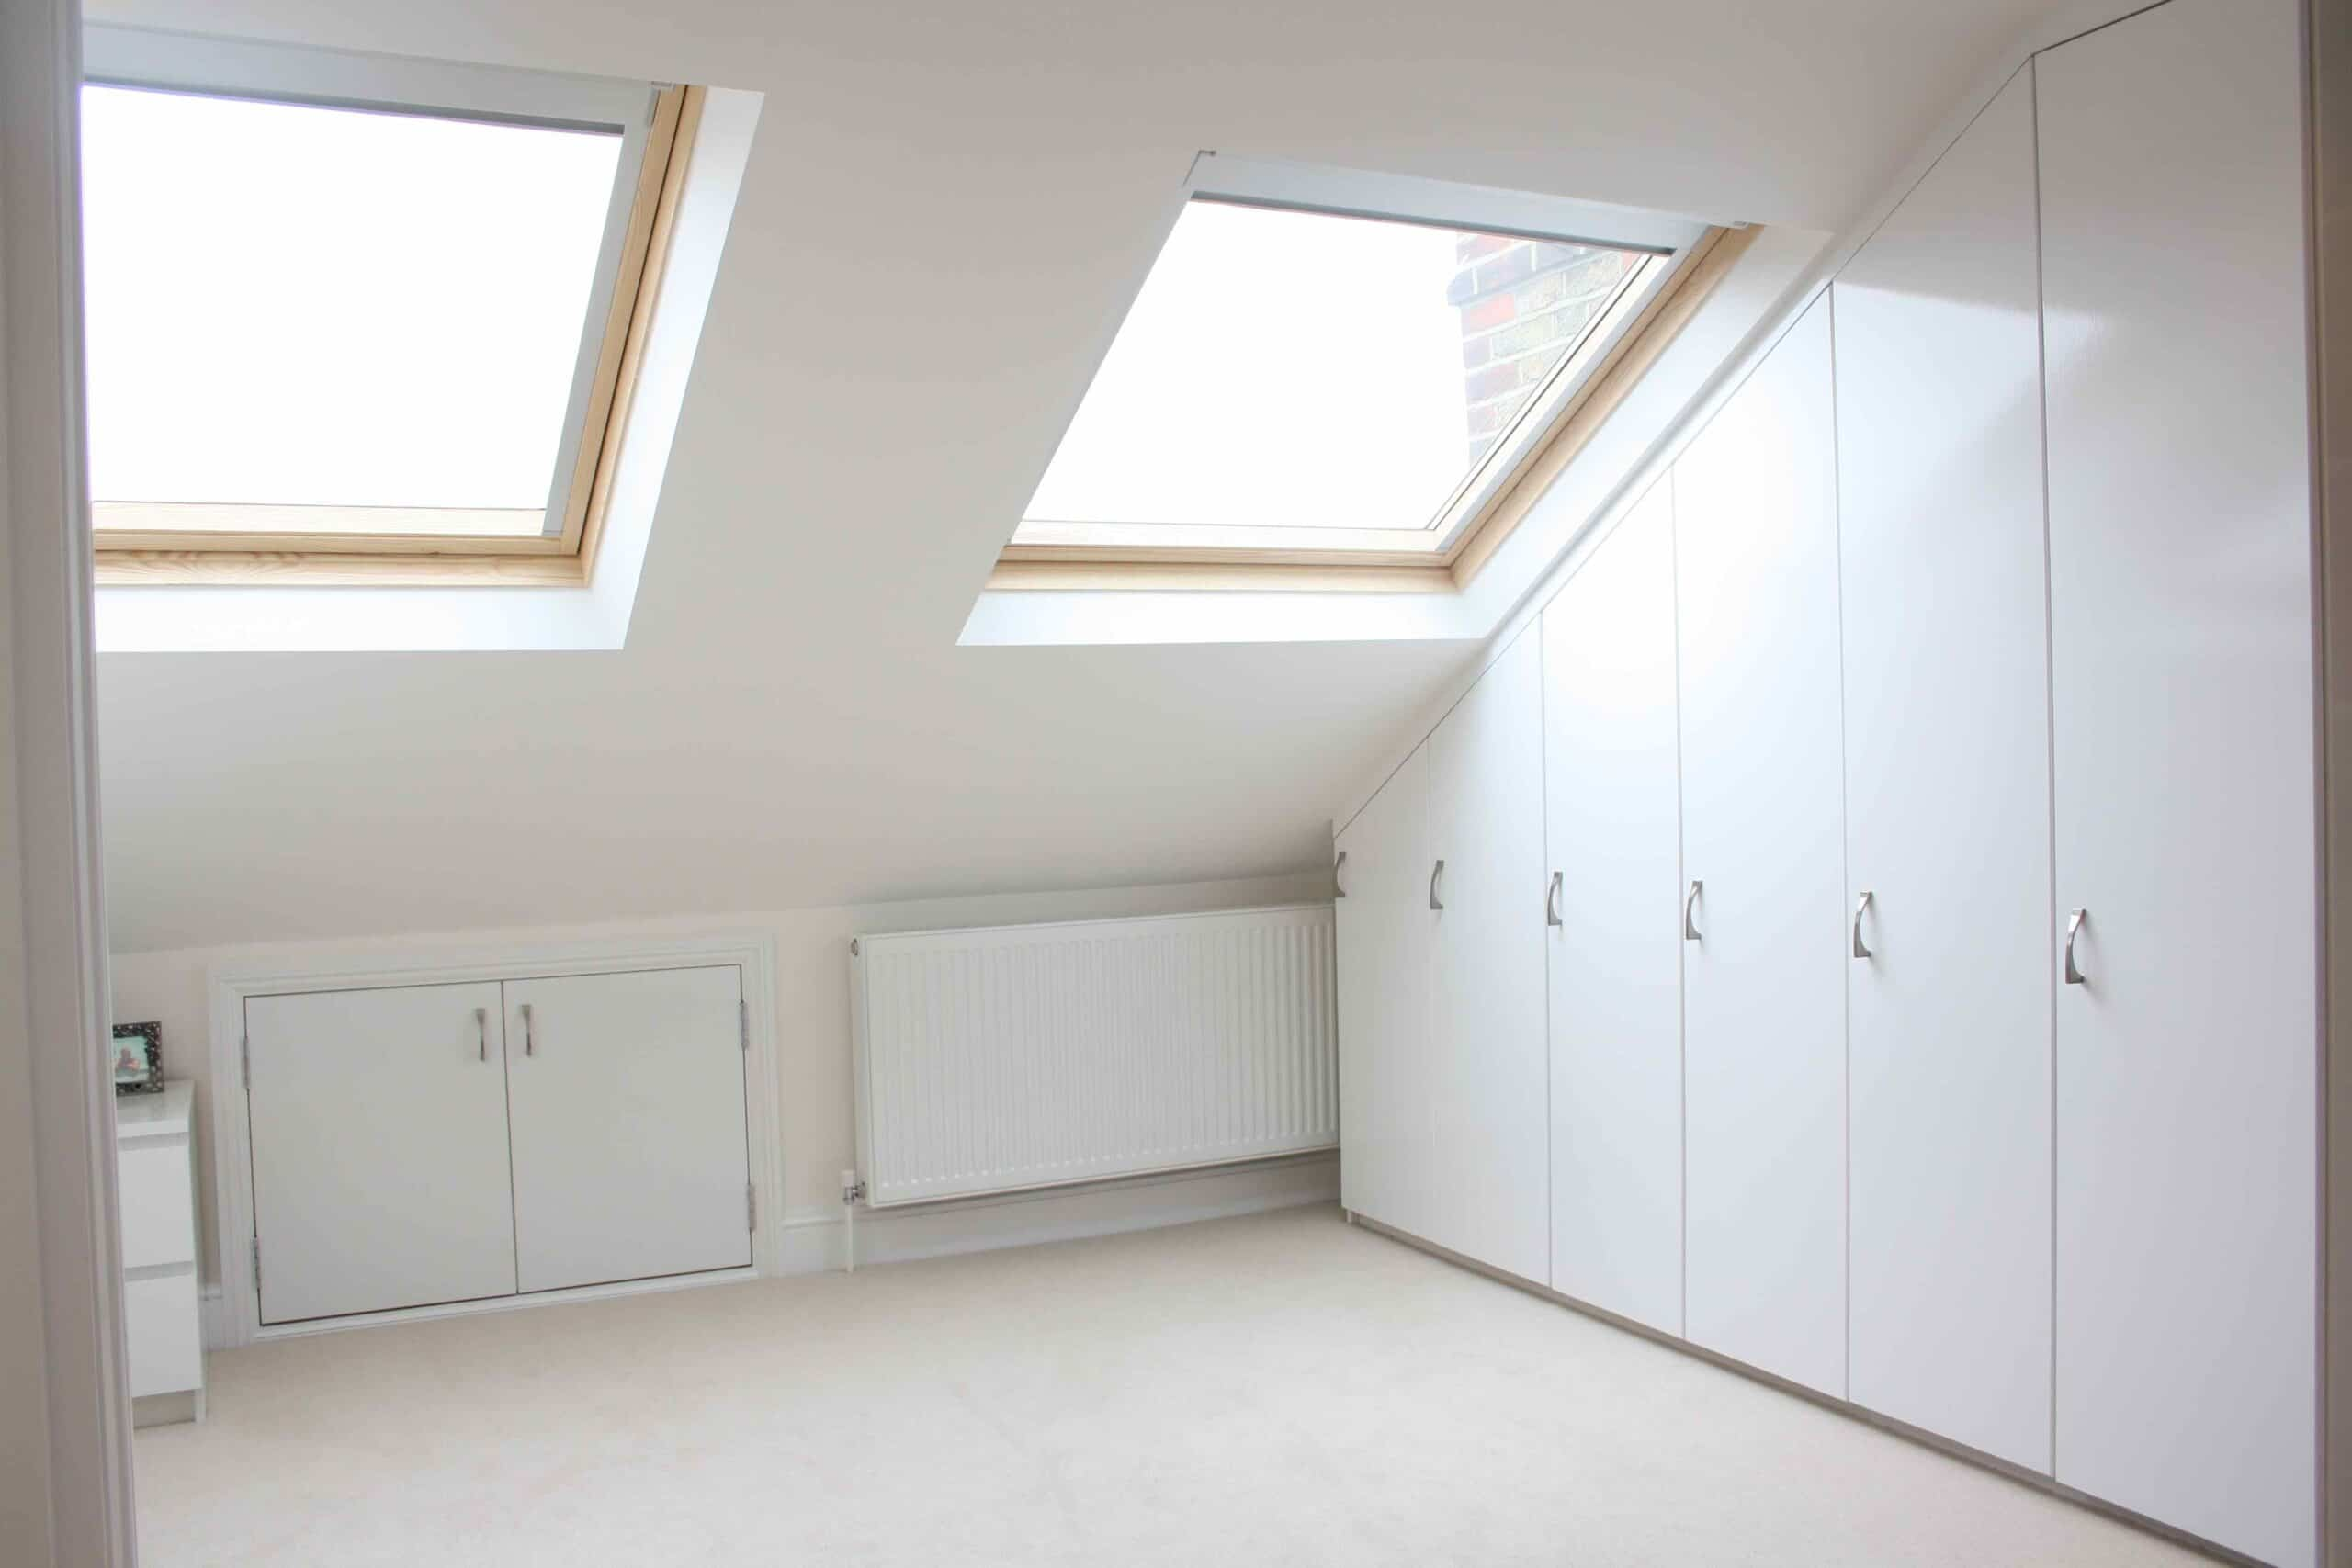 Loft Storage Would You Use A Loft Conversion For Storage